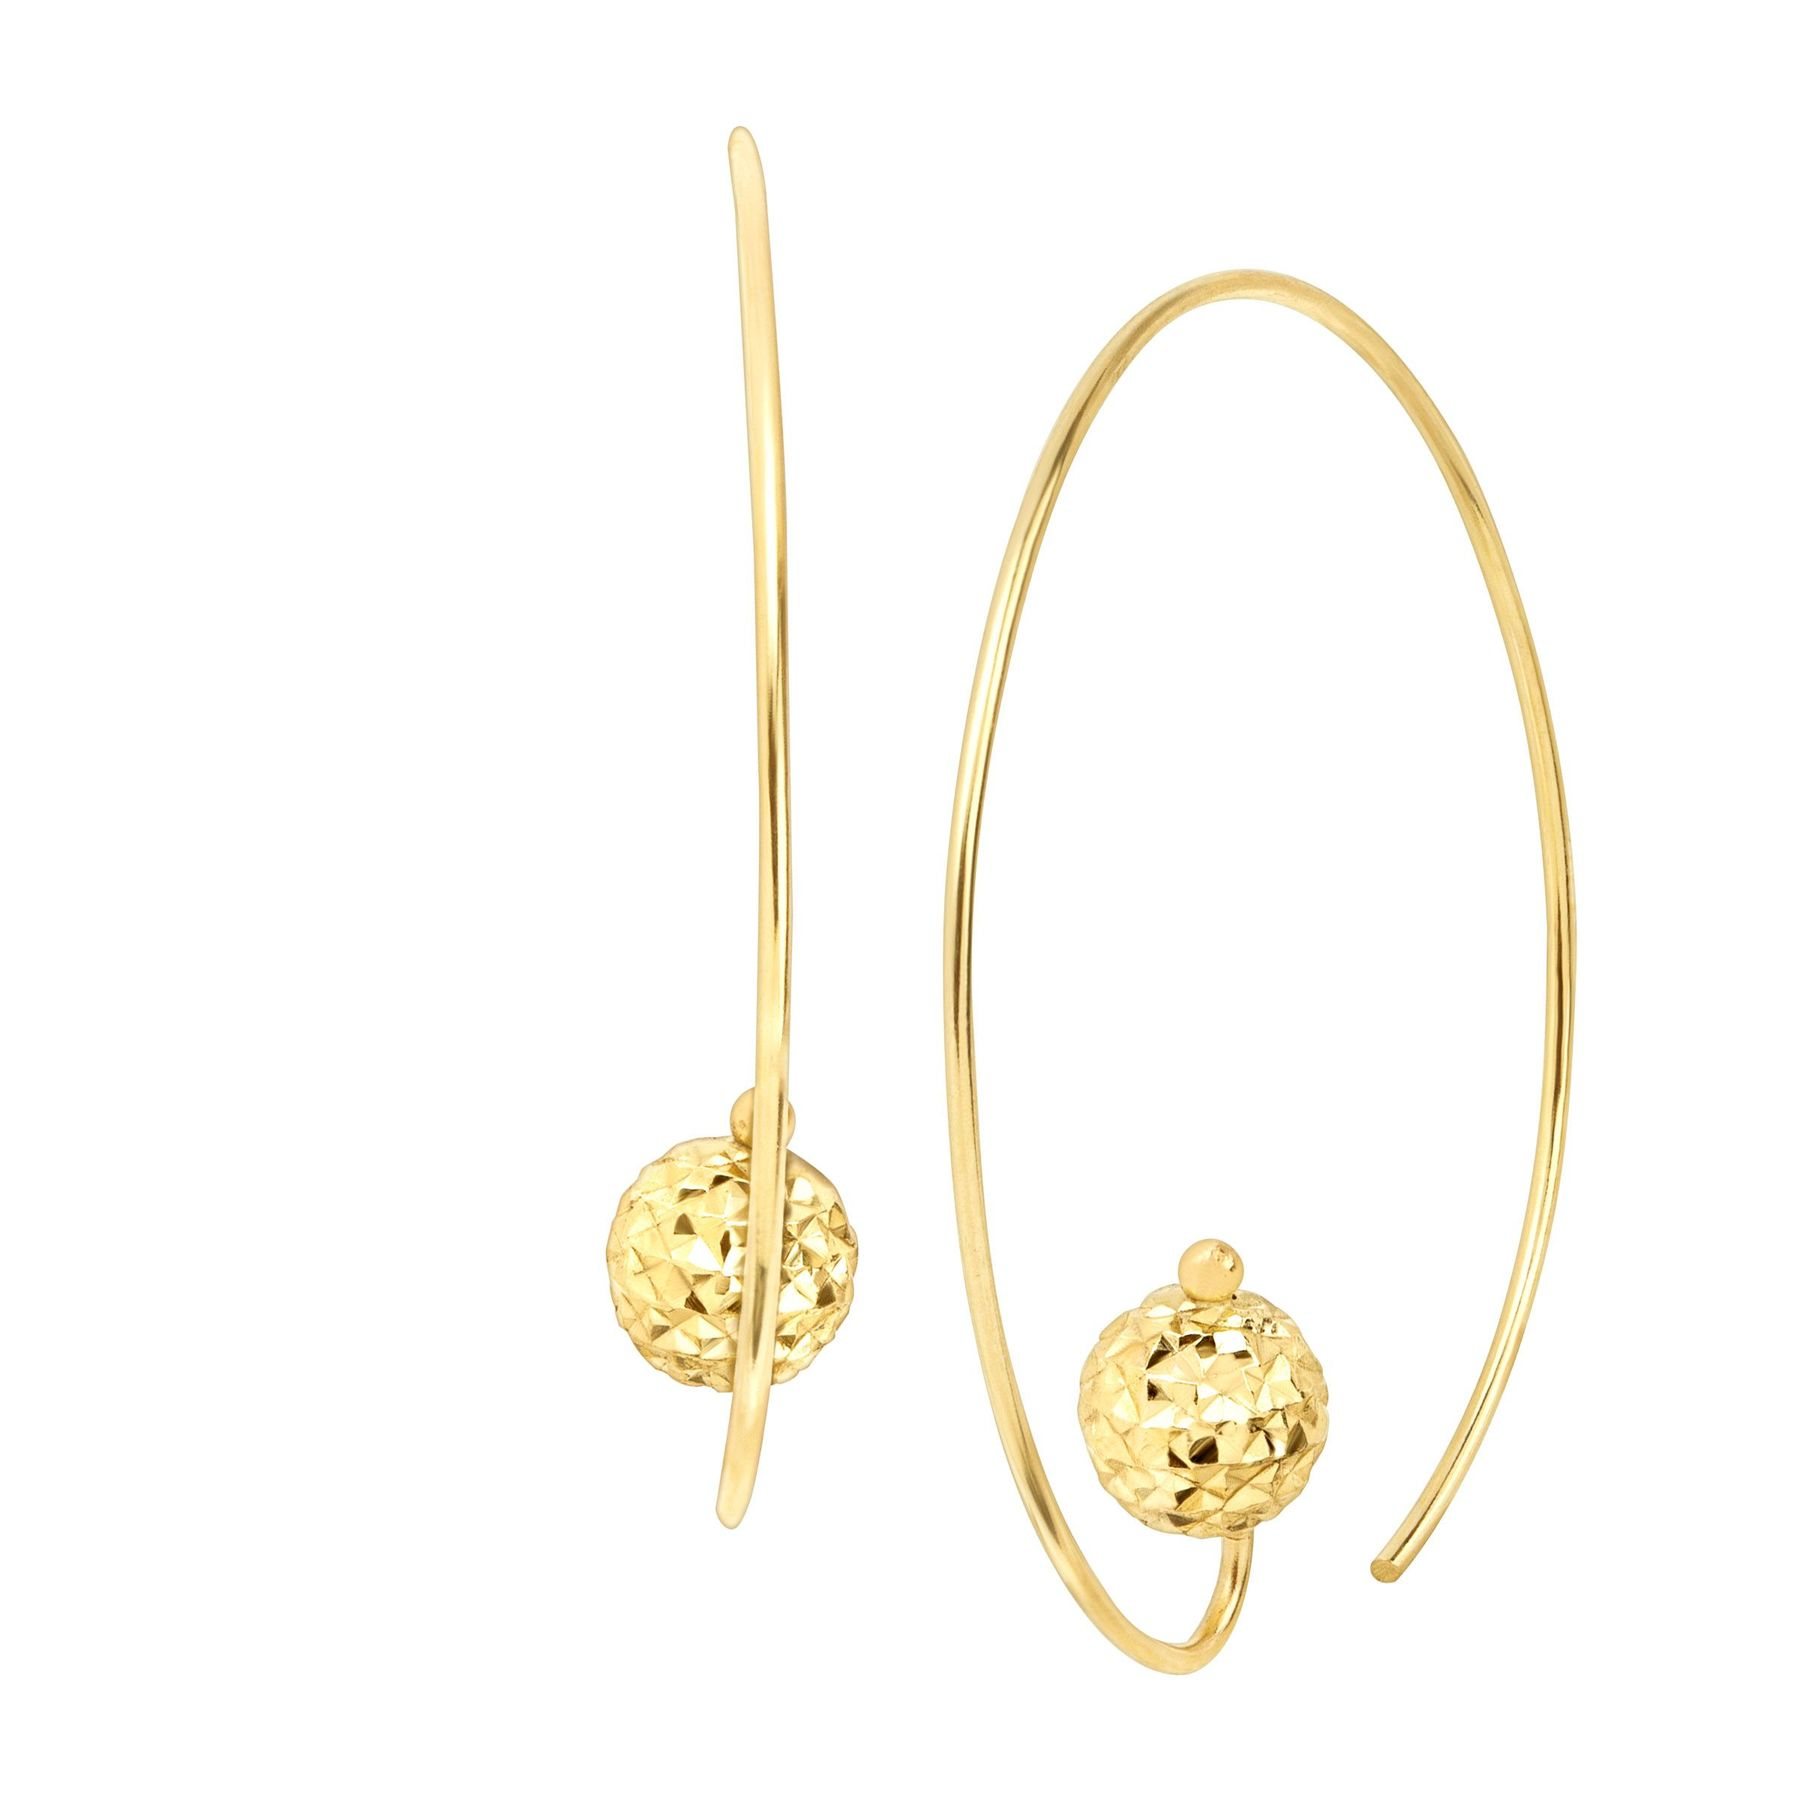 Eternity Gold Wire Hoop Earrings with Textured Bead in 14K Gold ...